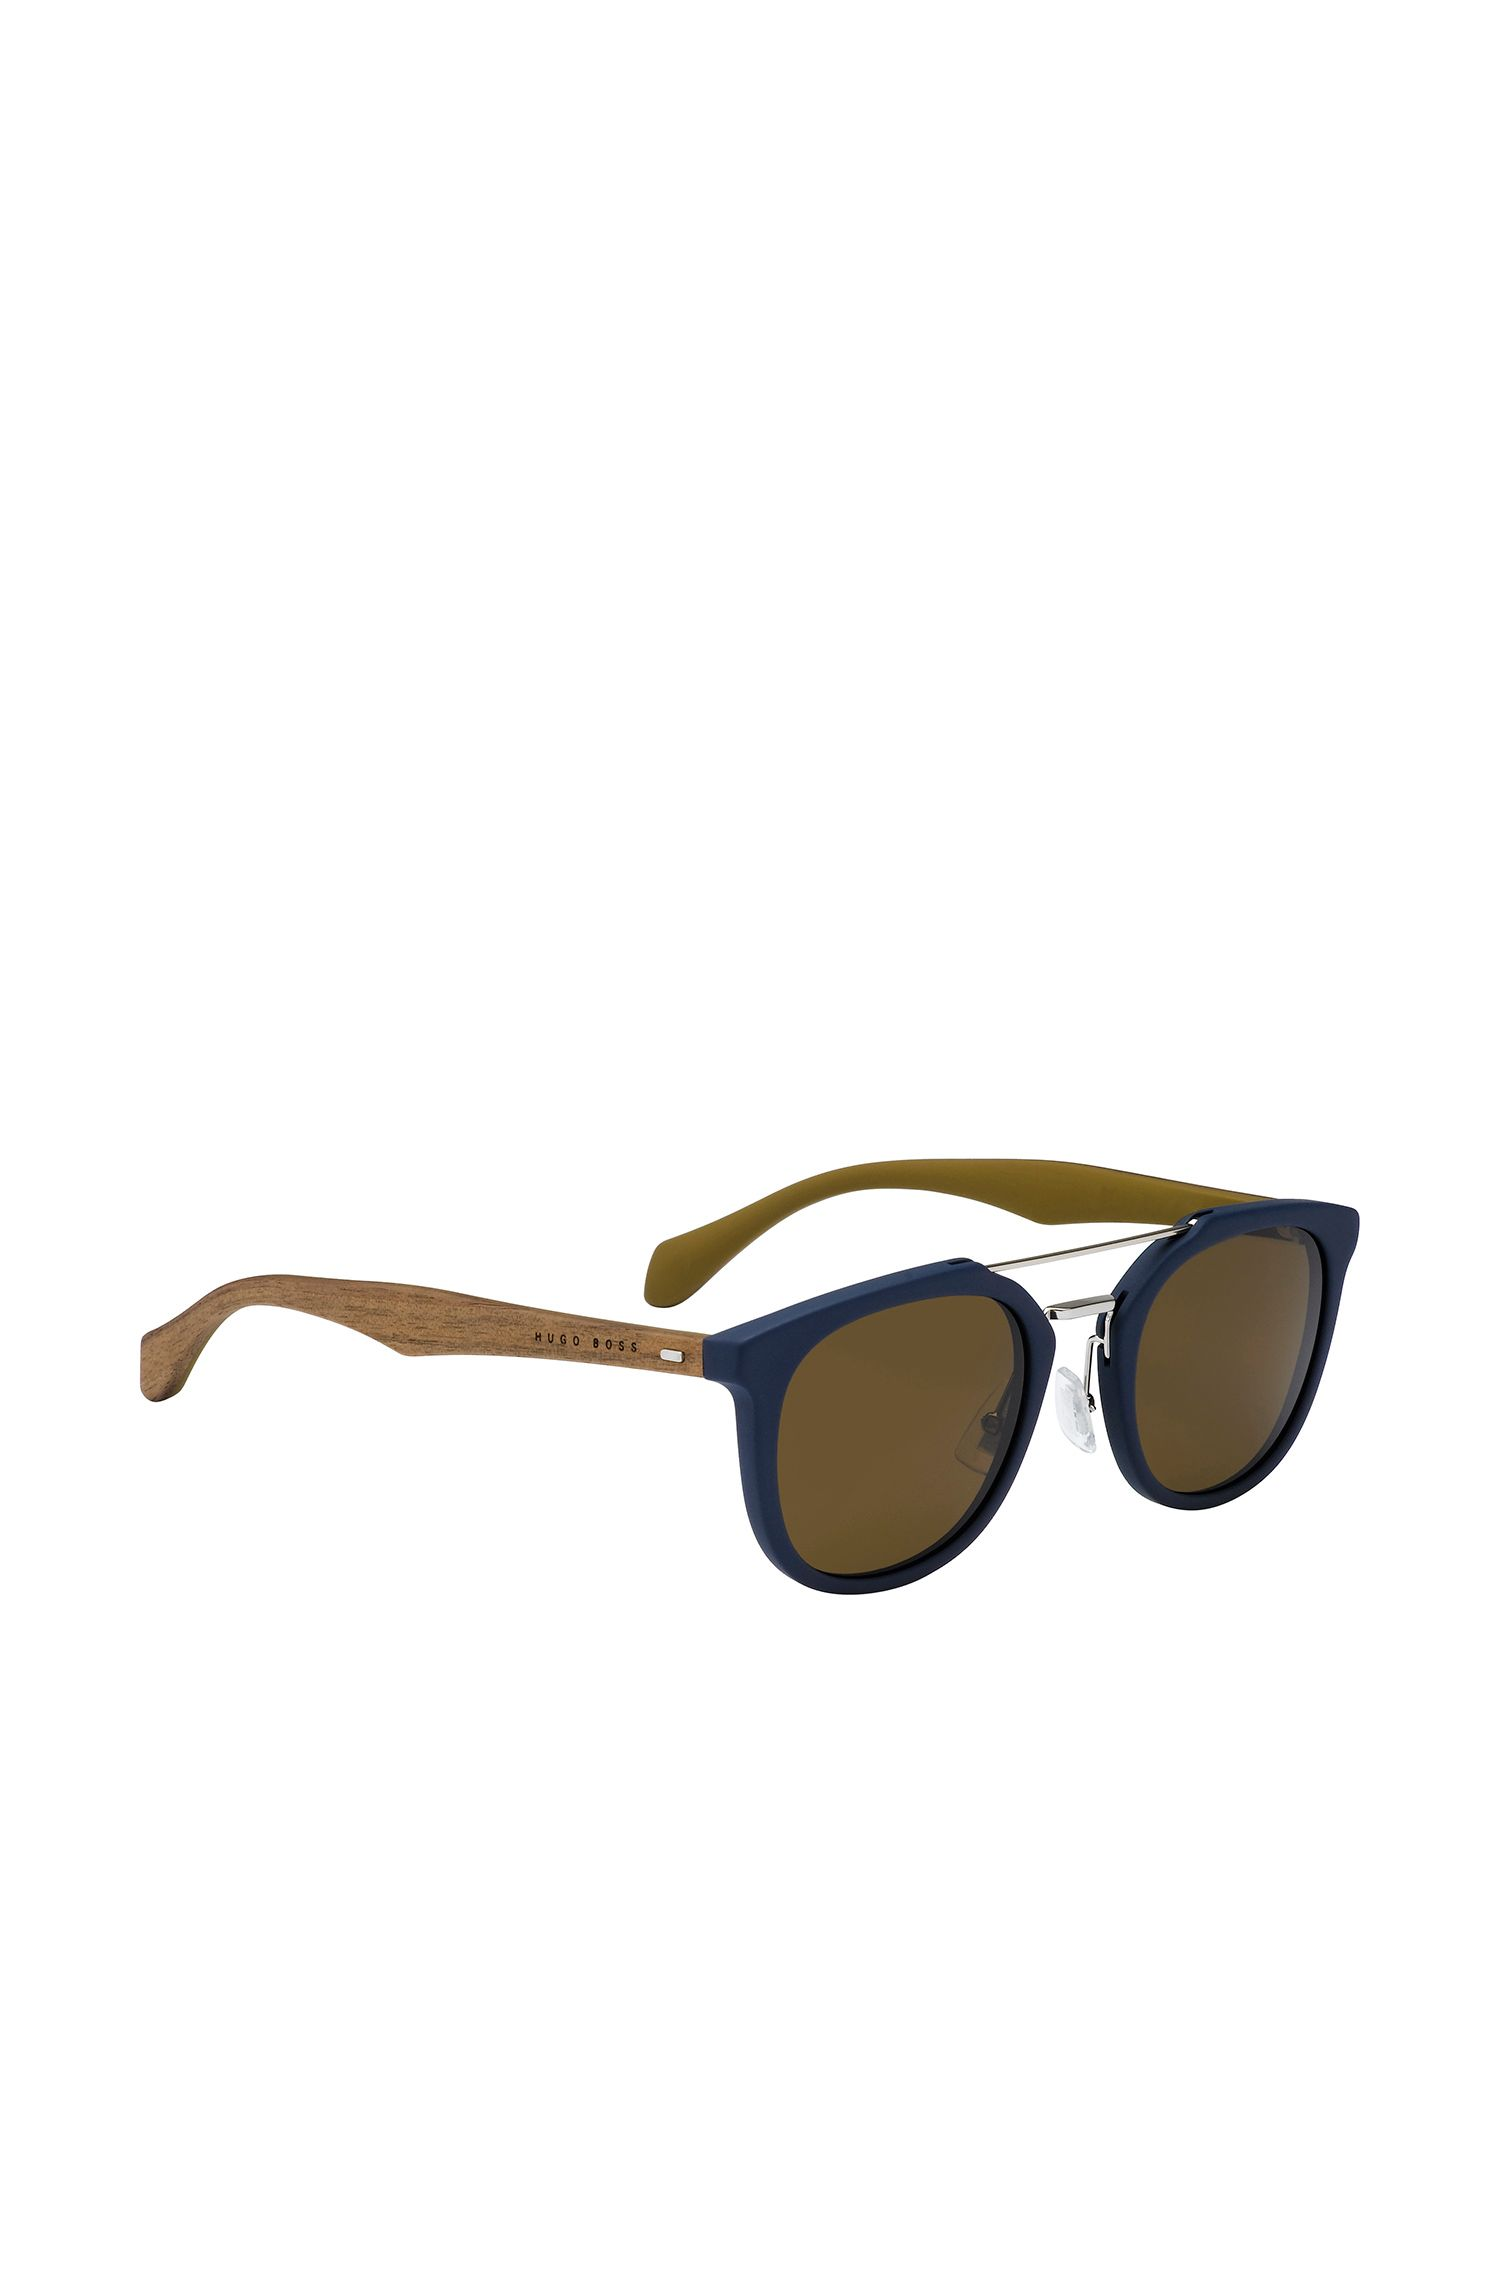 'BOSS 0777S' | Brown Lens Clubmaster Sunglasses